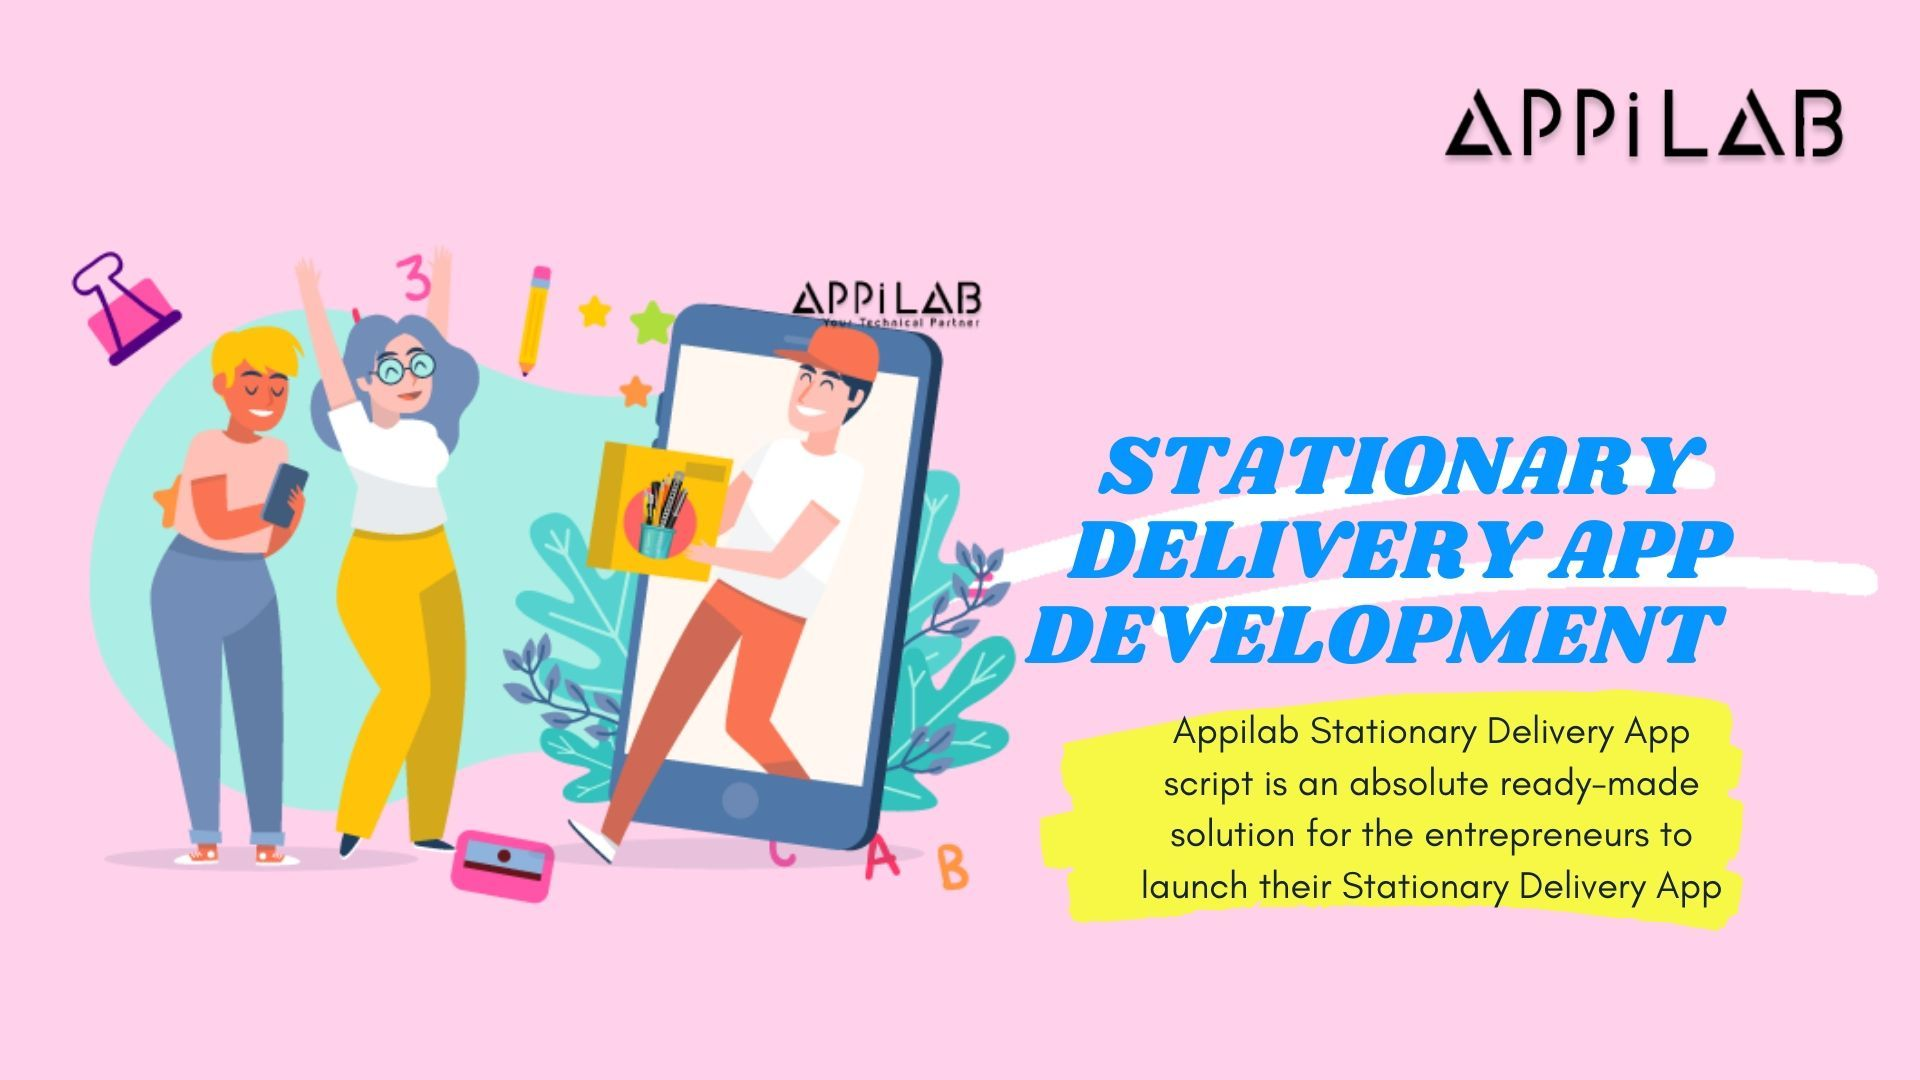 Uber for Stationary Delivery App Development Appilab in